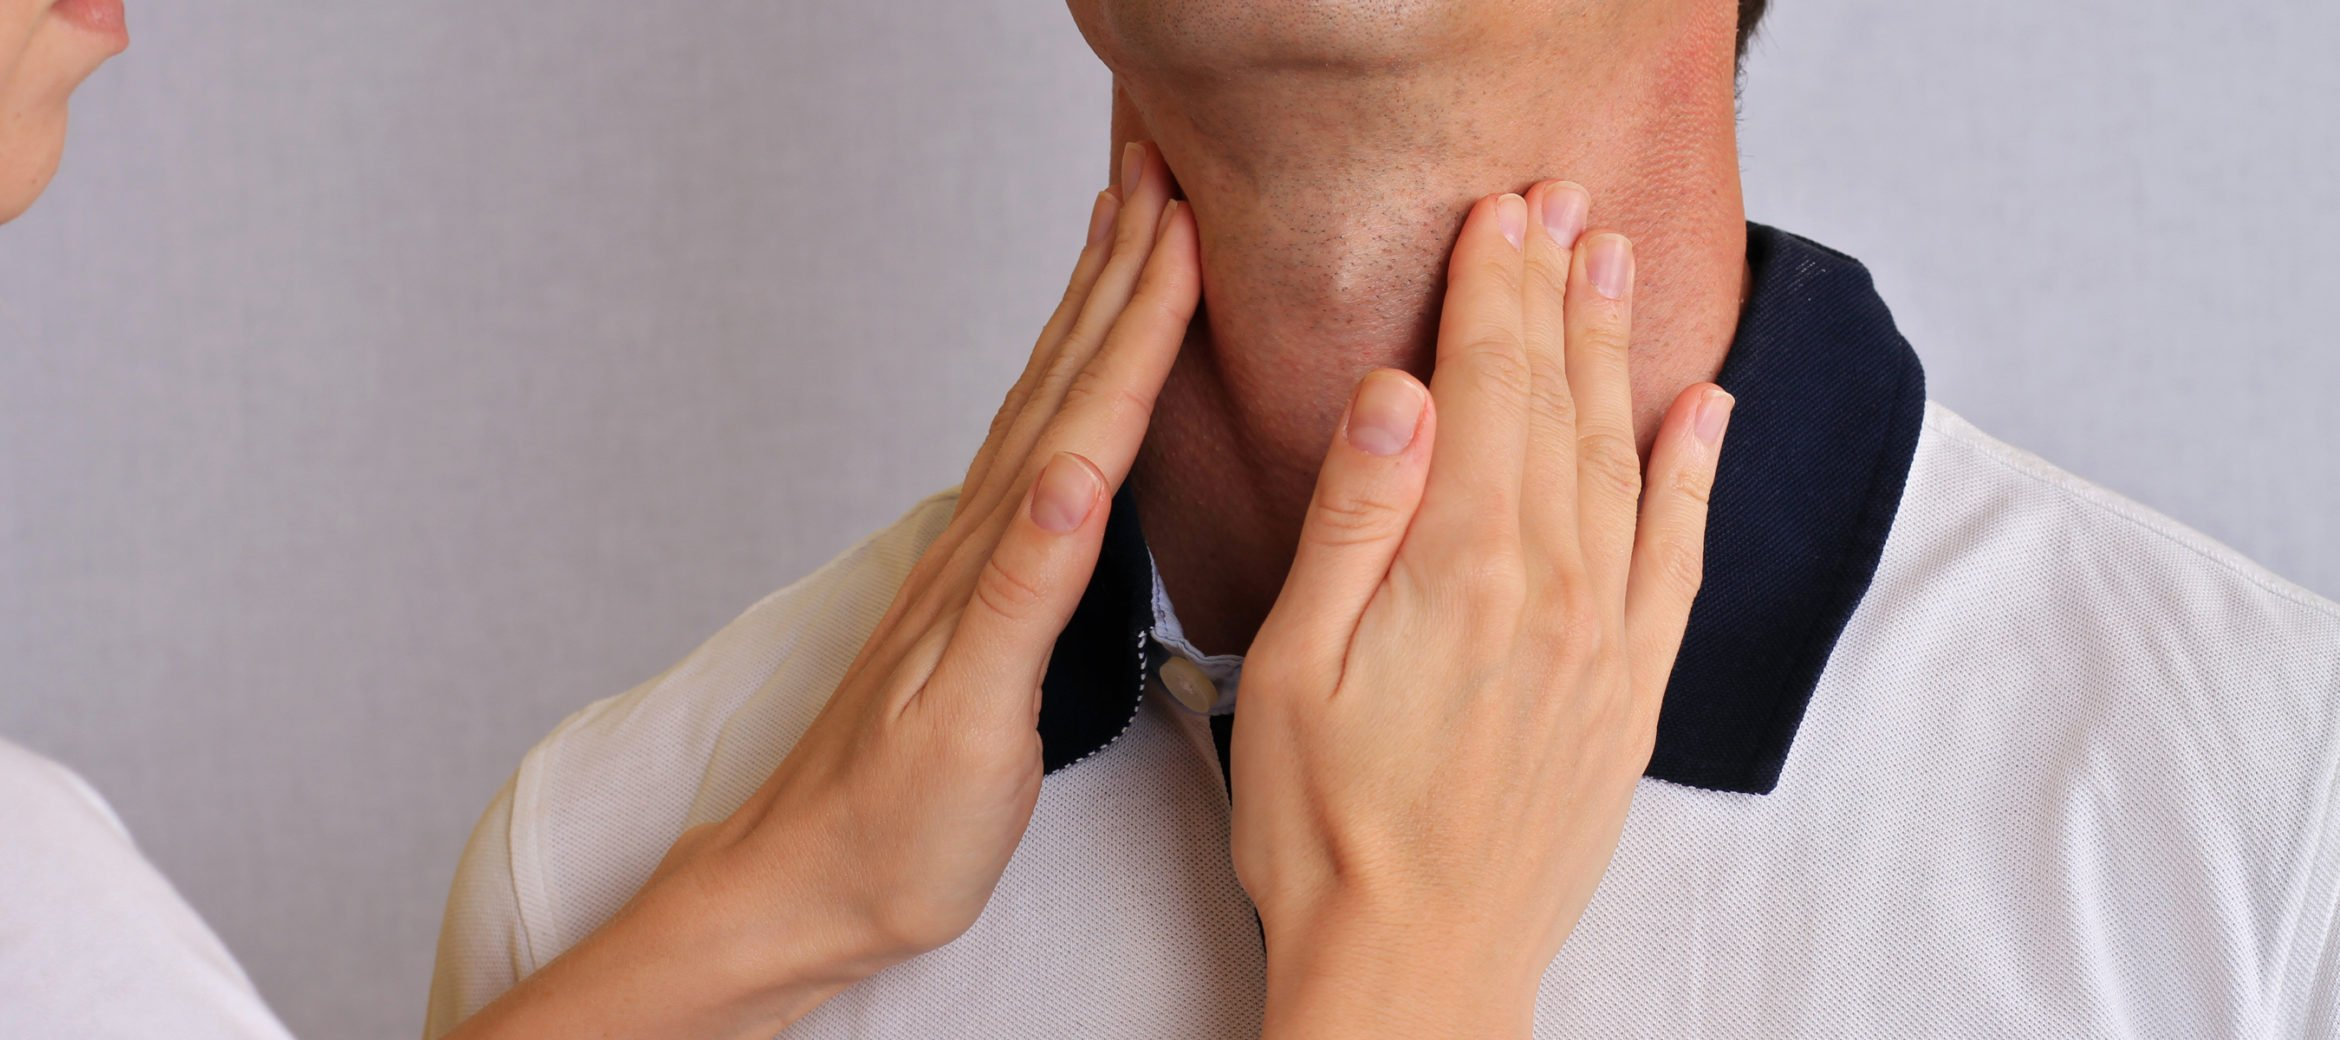 Thyroid symptoms in men: Yes, thyroid can affect men as well!